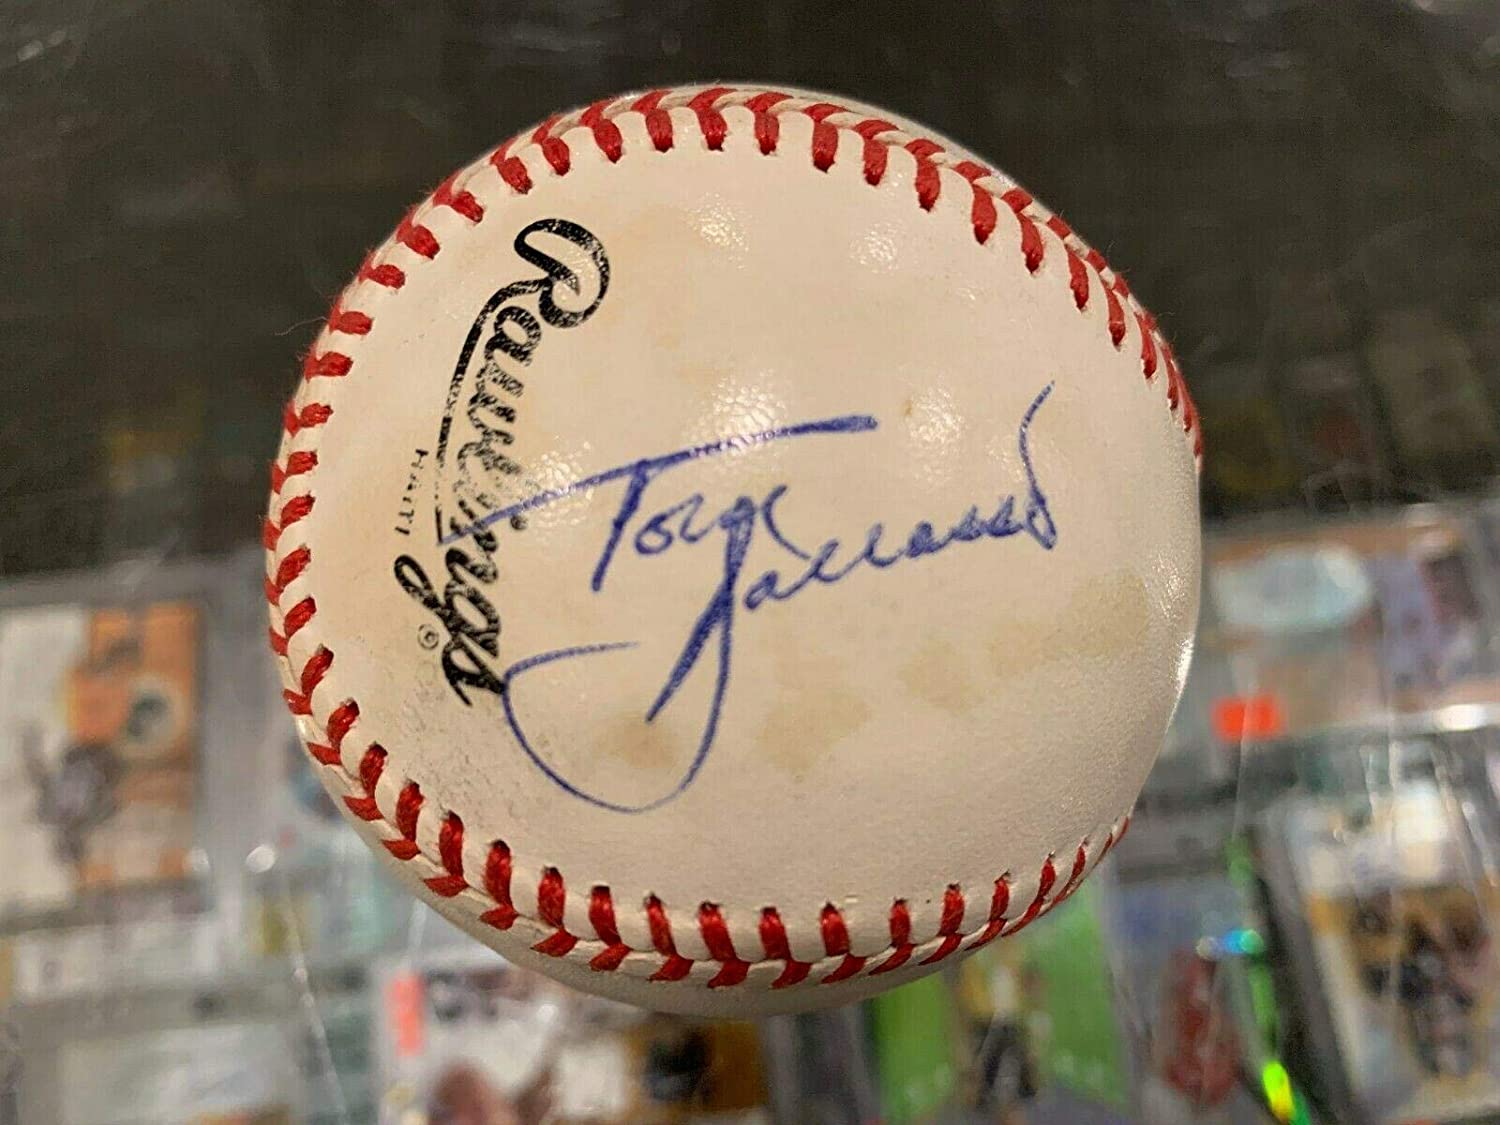 Tom Barrasso Pittsburgh Penguins Single Signed Official Baseball - JSA Certified - NHL Autographed Miscellaneous Items